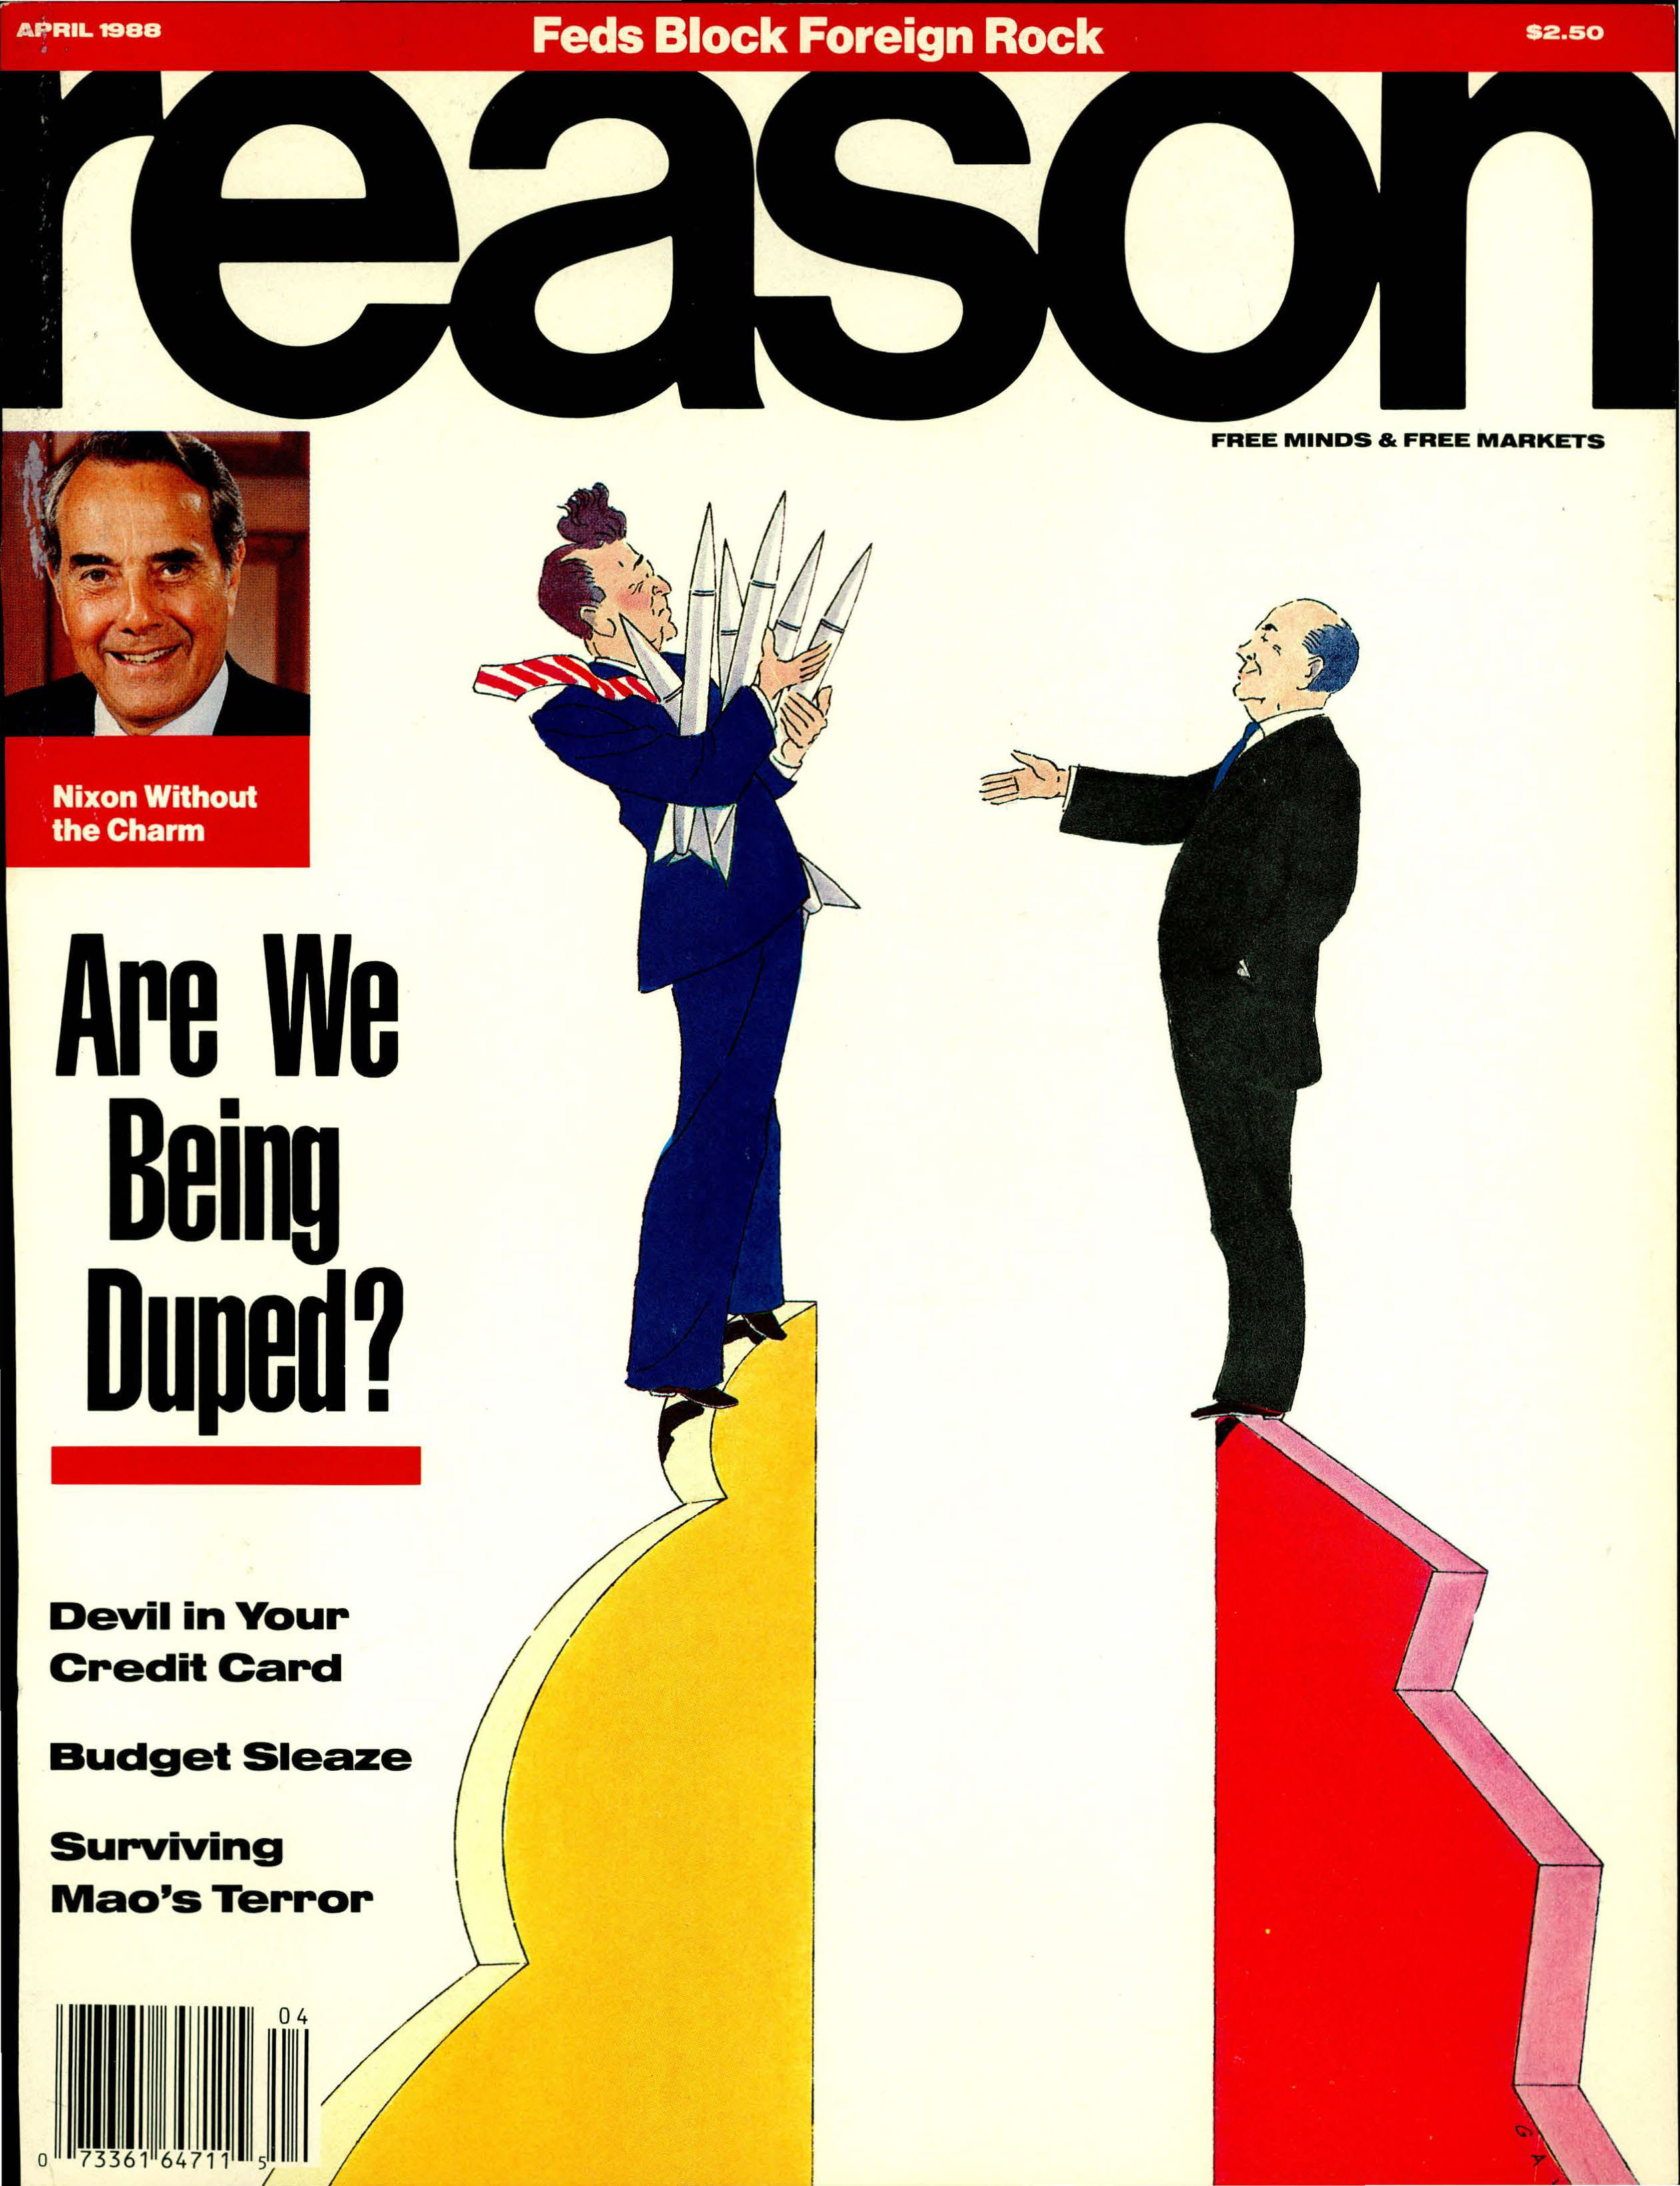 Reason Magazine, April 1988 cover image